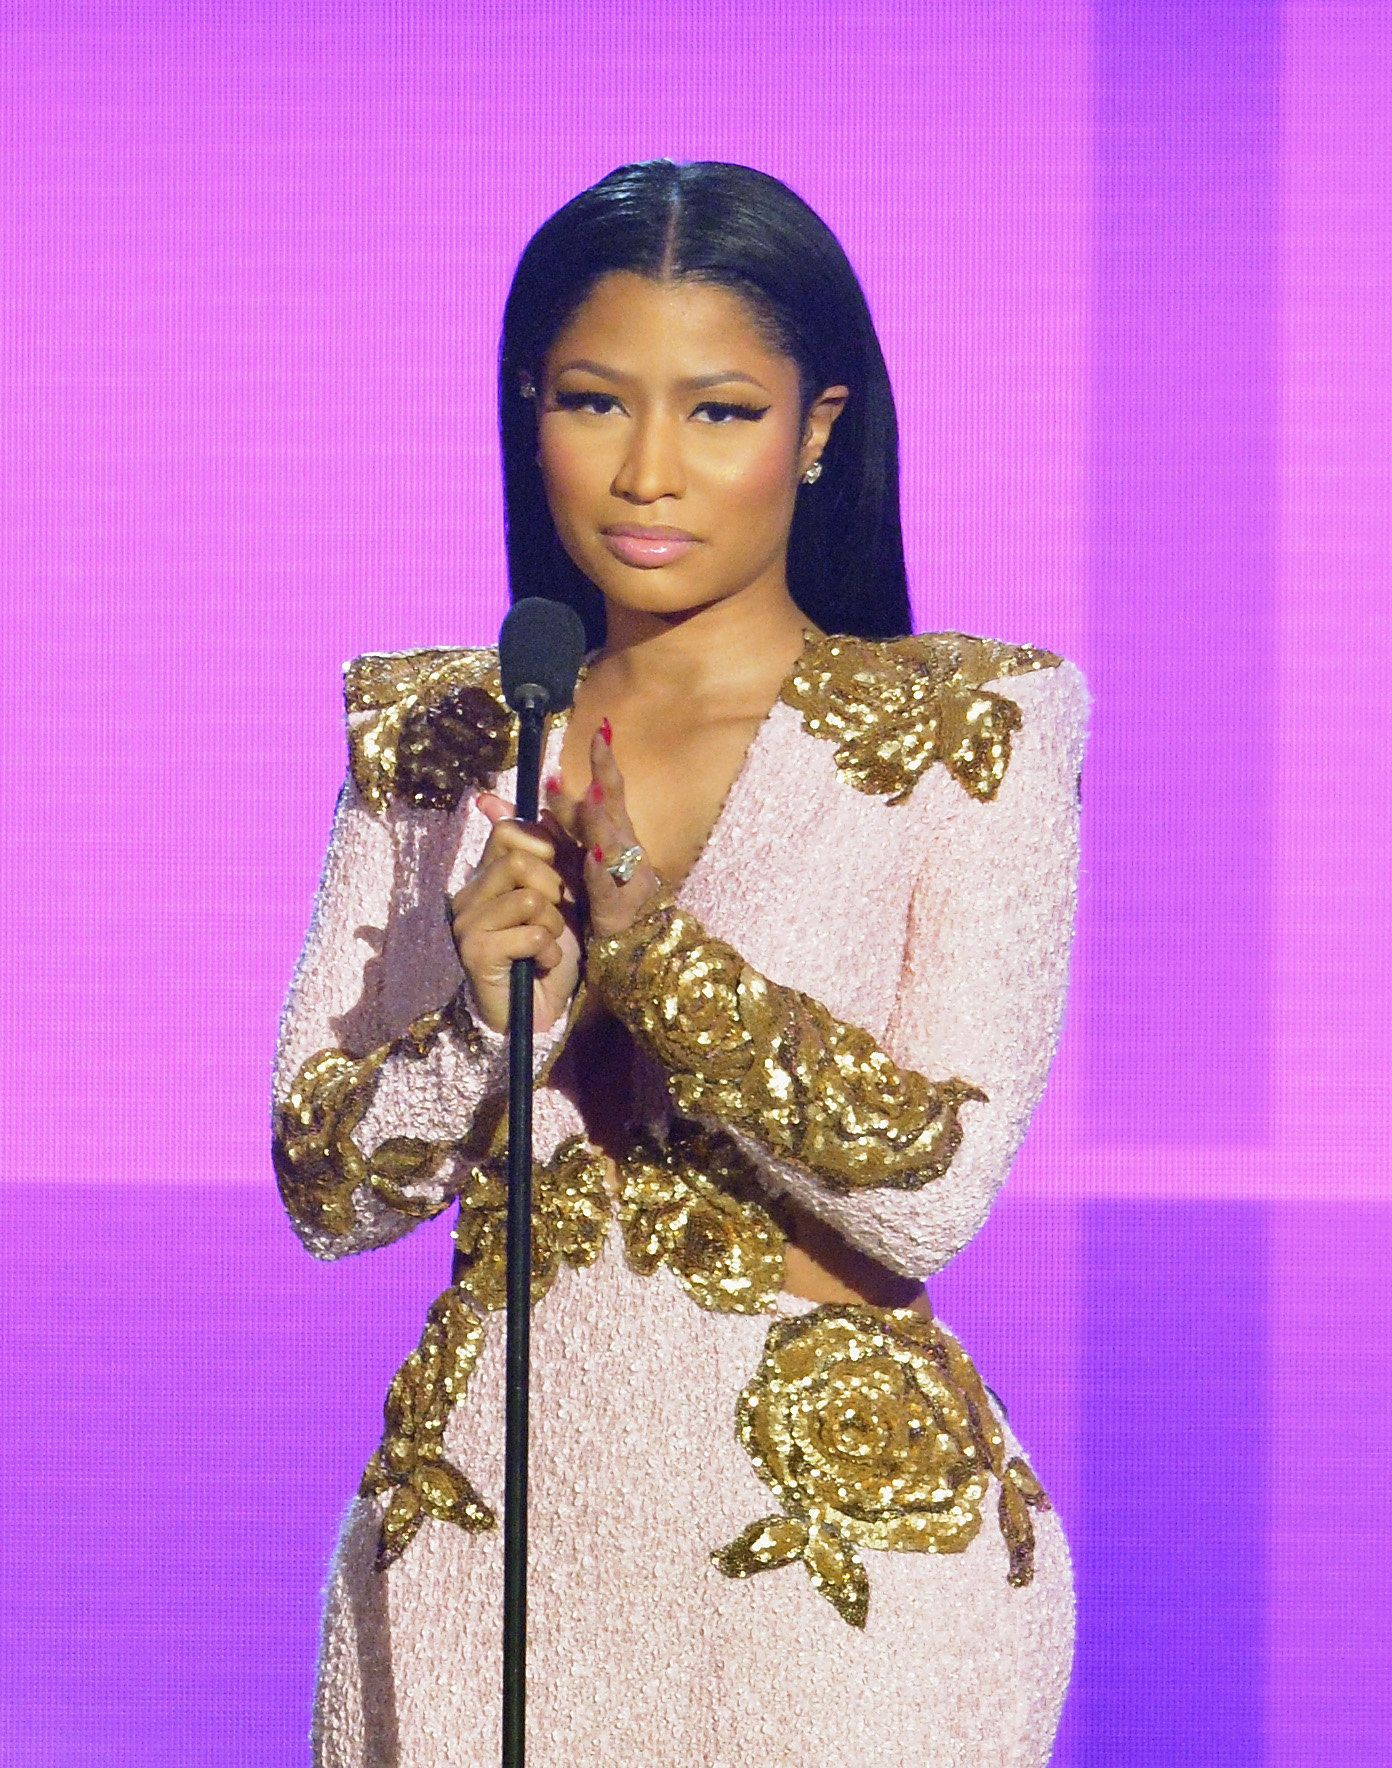 LOS ANGELES, CA - NOVEMBER 22:  Recording artist Nicki Minaj speaks onstage during the 2015 American Music Awards at Microsoft Theater on November 22, 2015 in Los Angeles, California.  (Photo by Lester Cohen/WireImage)